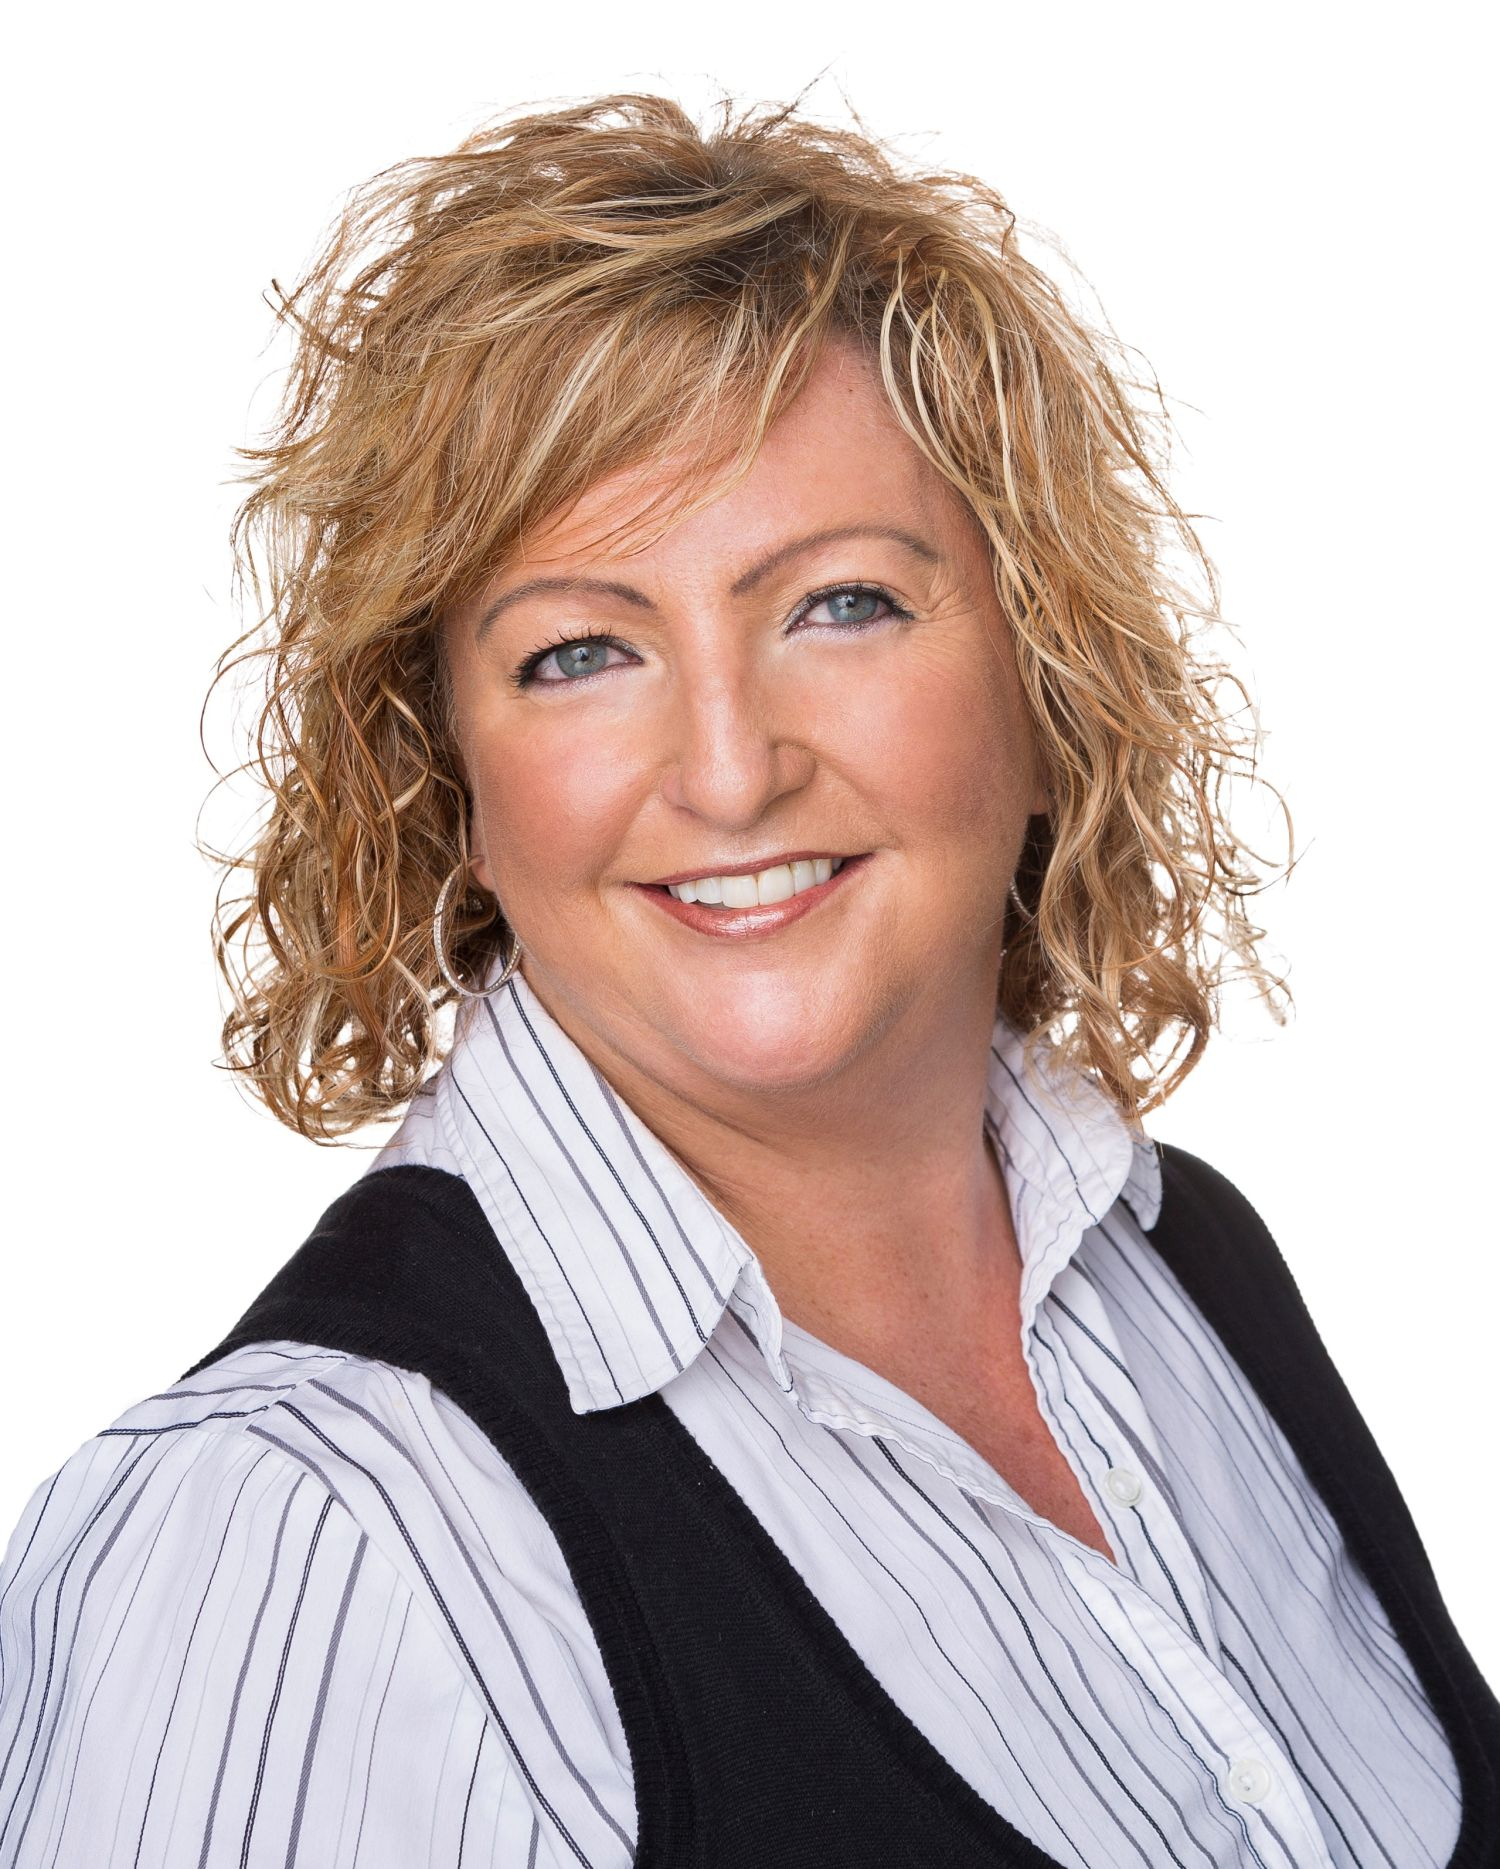 Lesley Parrans, Sales Representatives - Brantford, ON